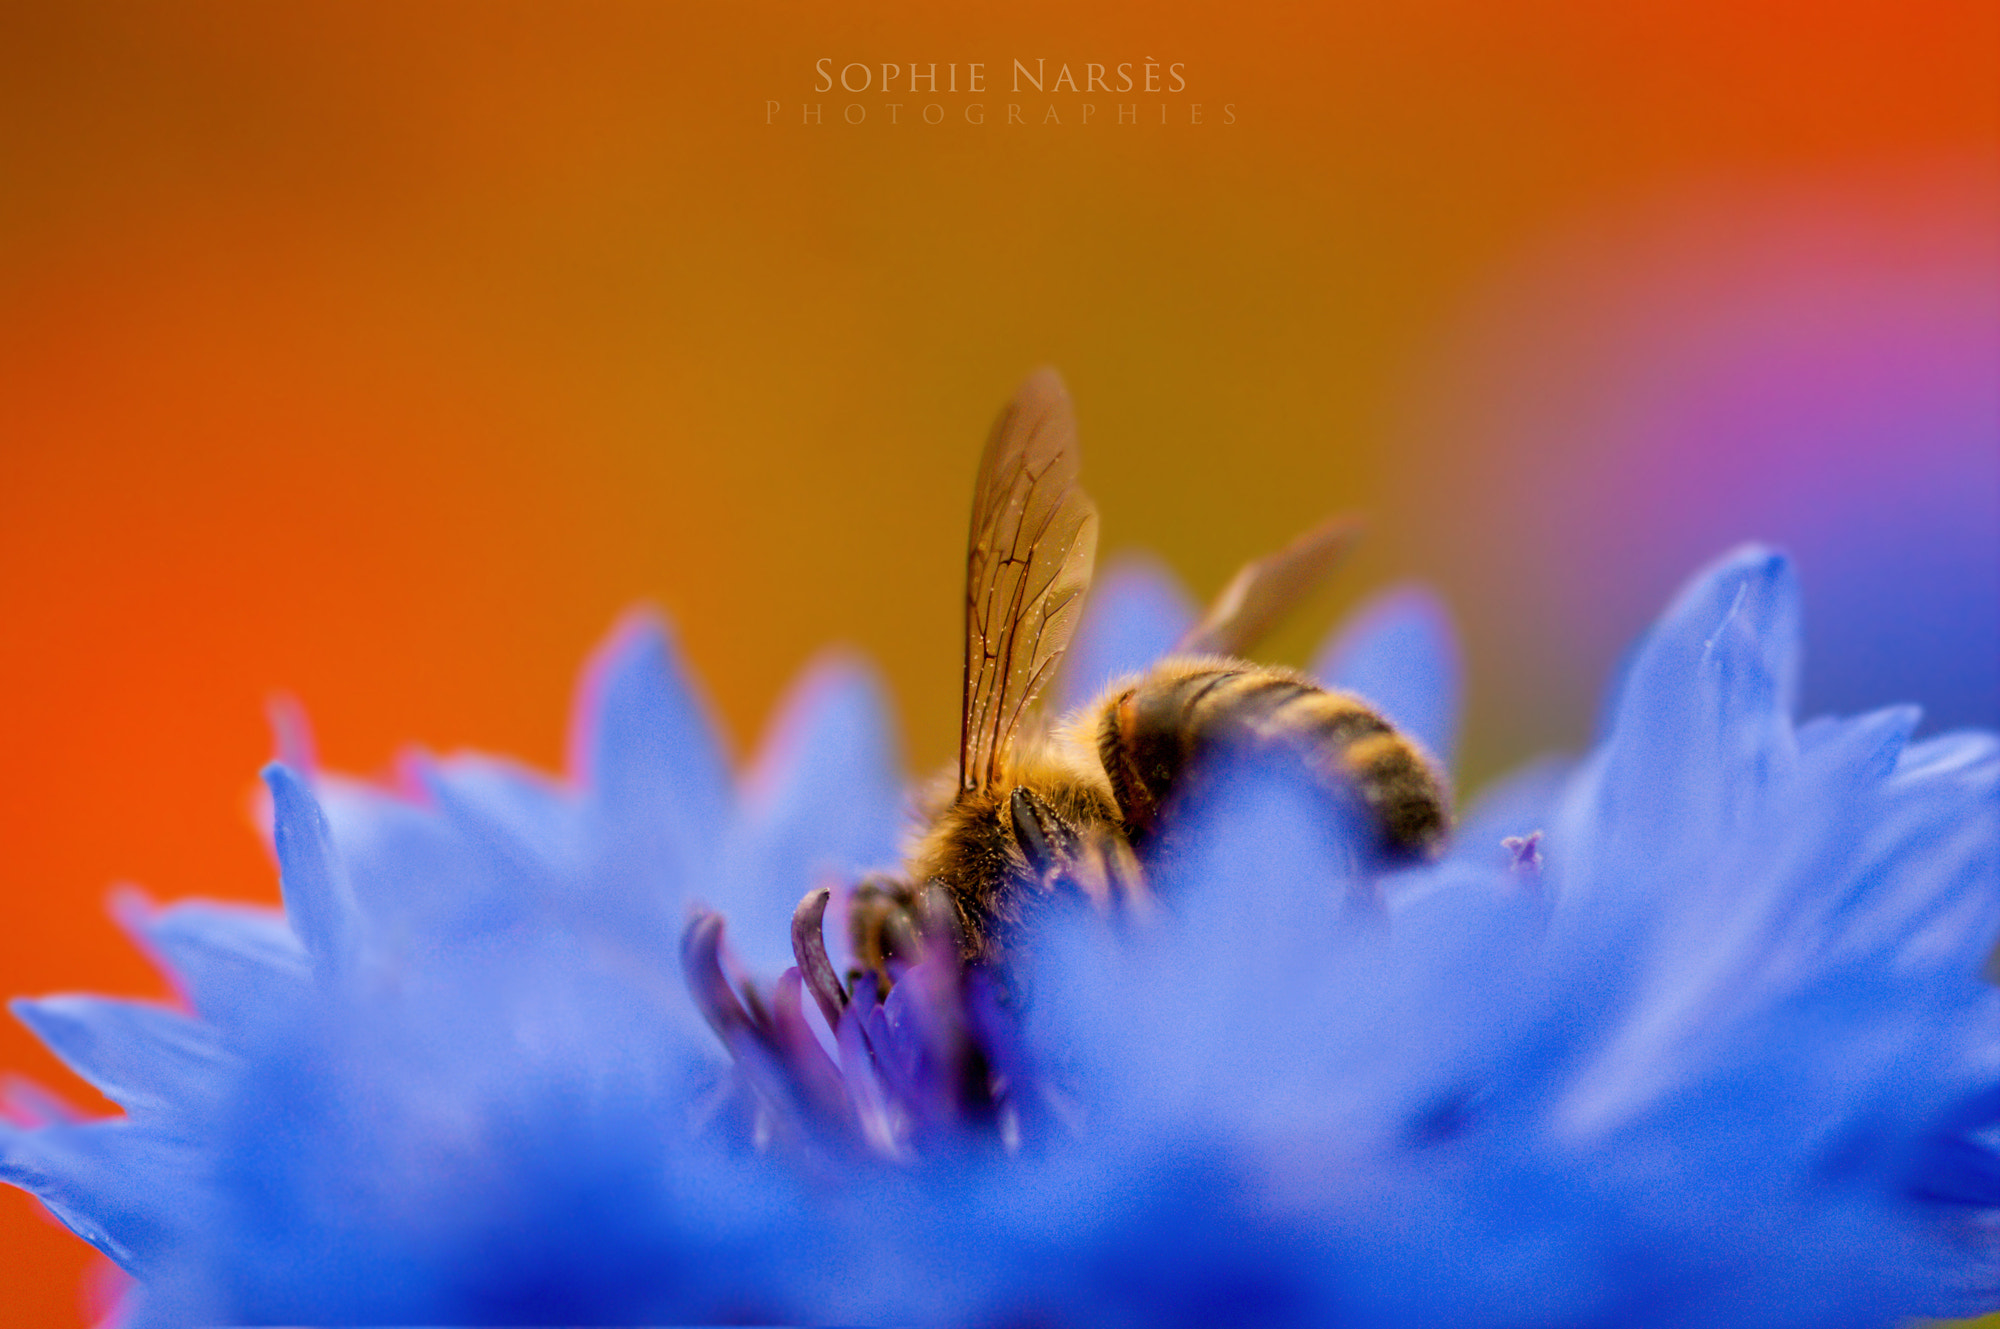 Photograph Dance with me into the colors by Sophie Narses on 500px